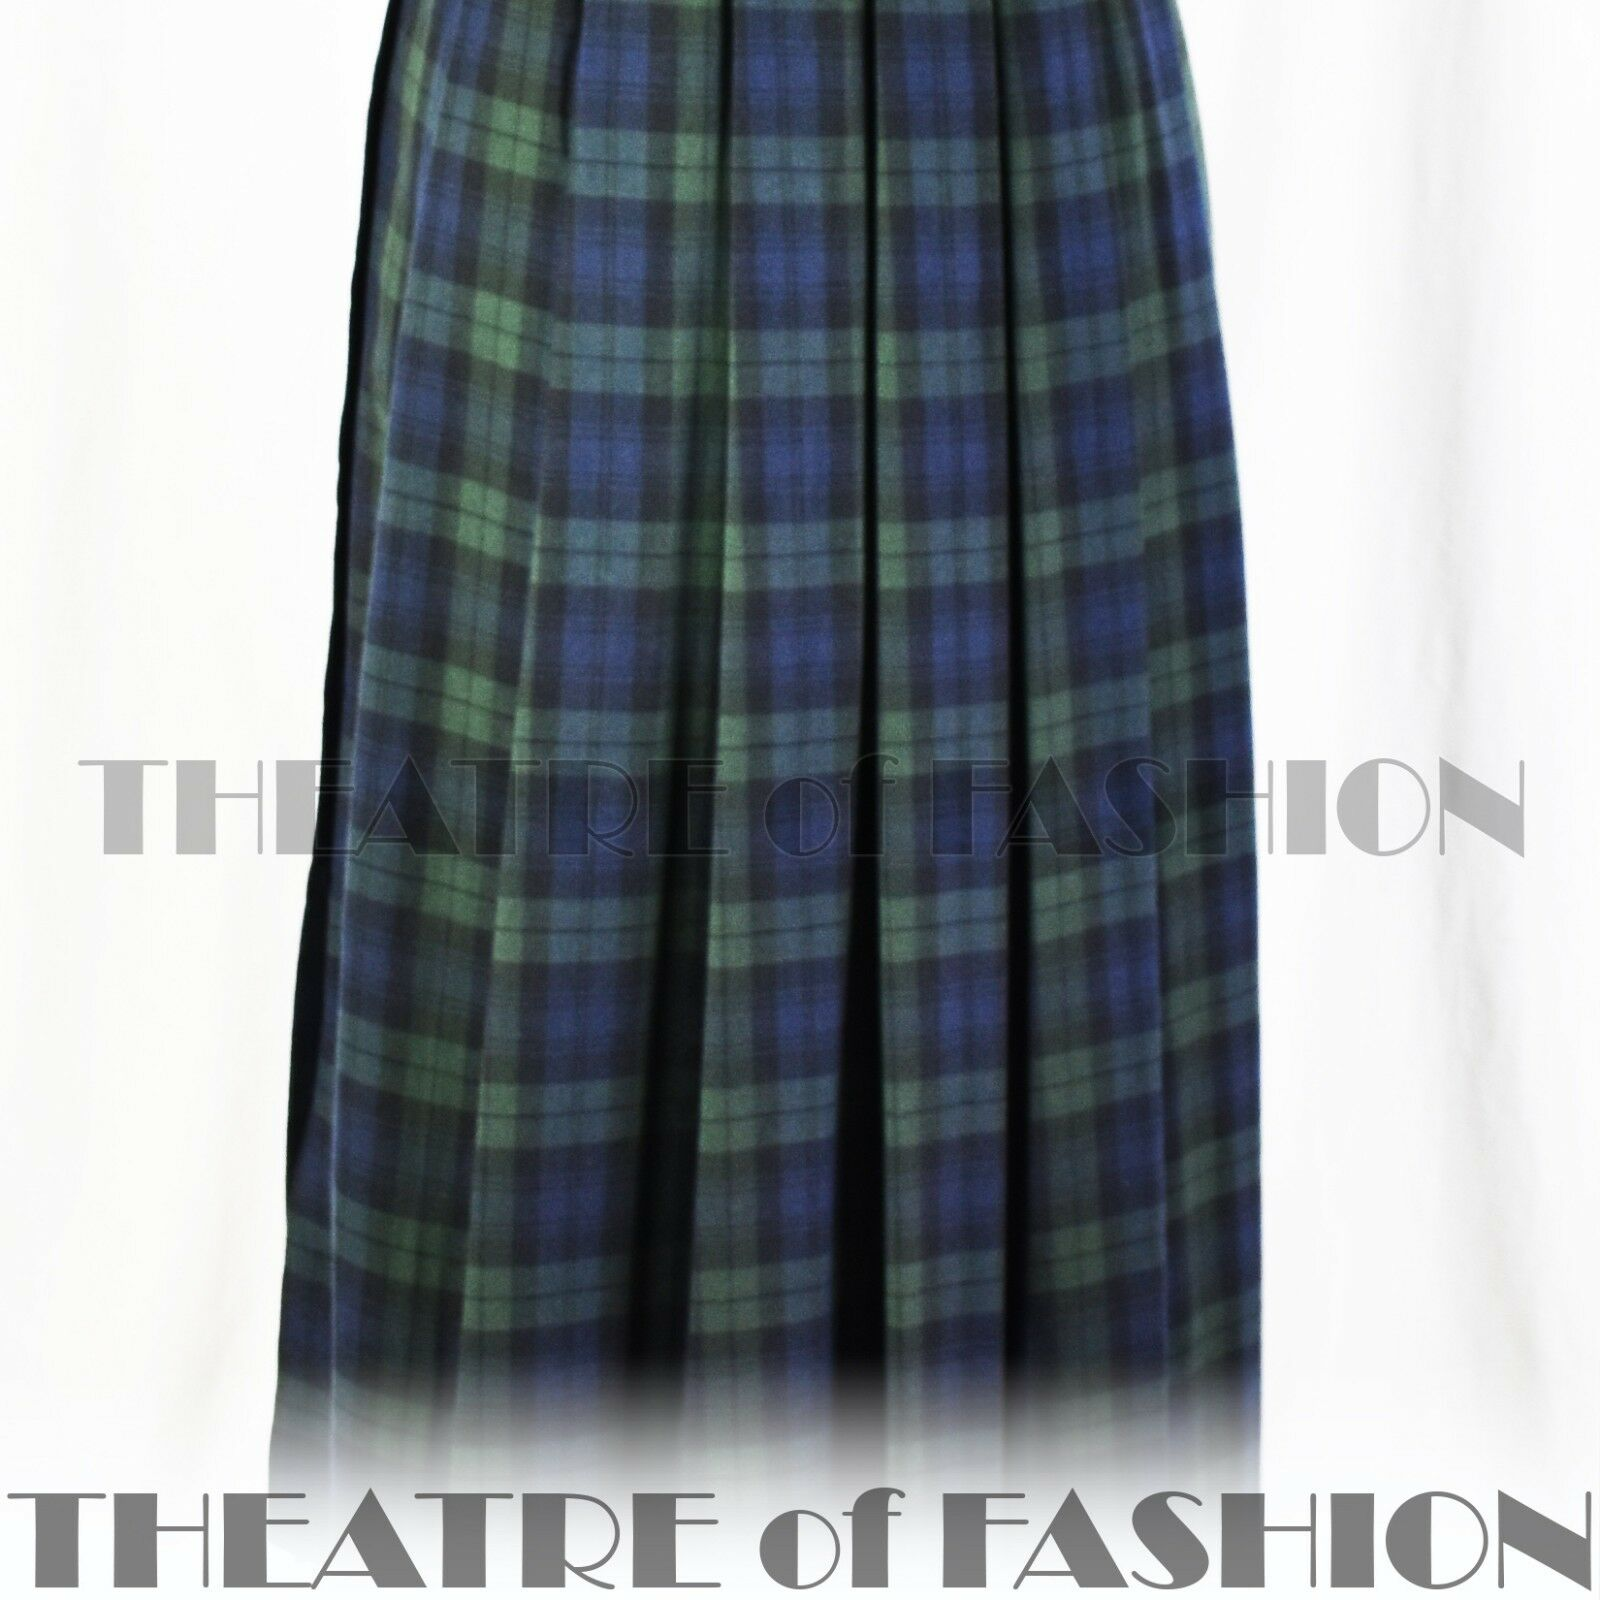 Abito in in in tartan vintage Laura Ashley 10 12 14 20s 30s Vittoriano Edoardiano 40s 50s d9a1c1